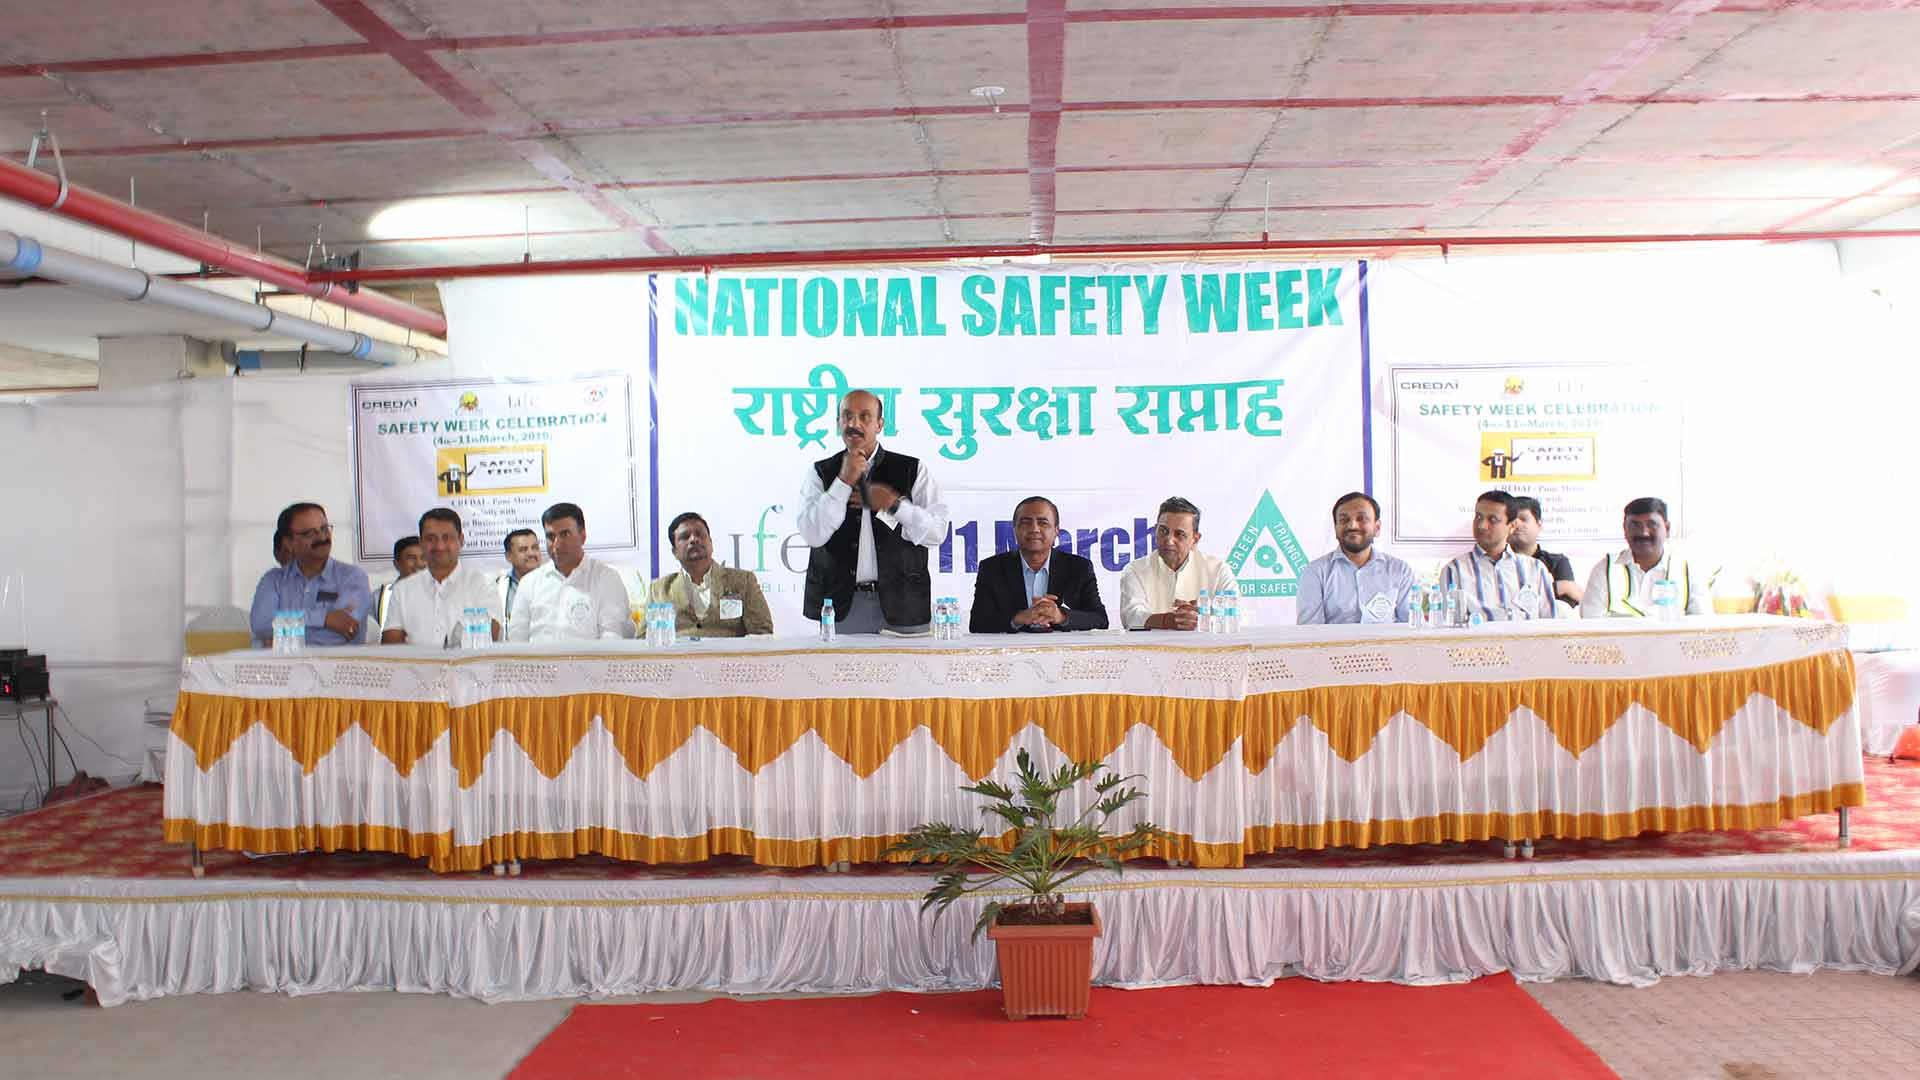 Safety Week Celebration held on Life Republic Construction Site, Hinjewadi of Kolte Patil Developers Ltd.